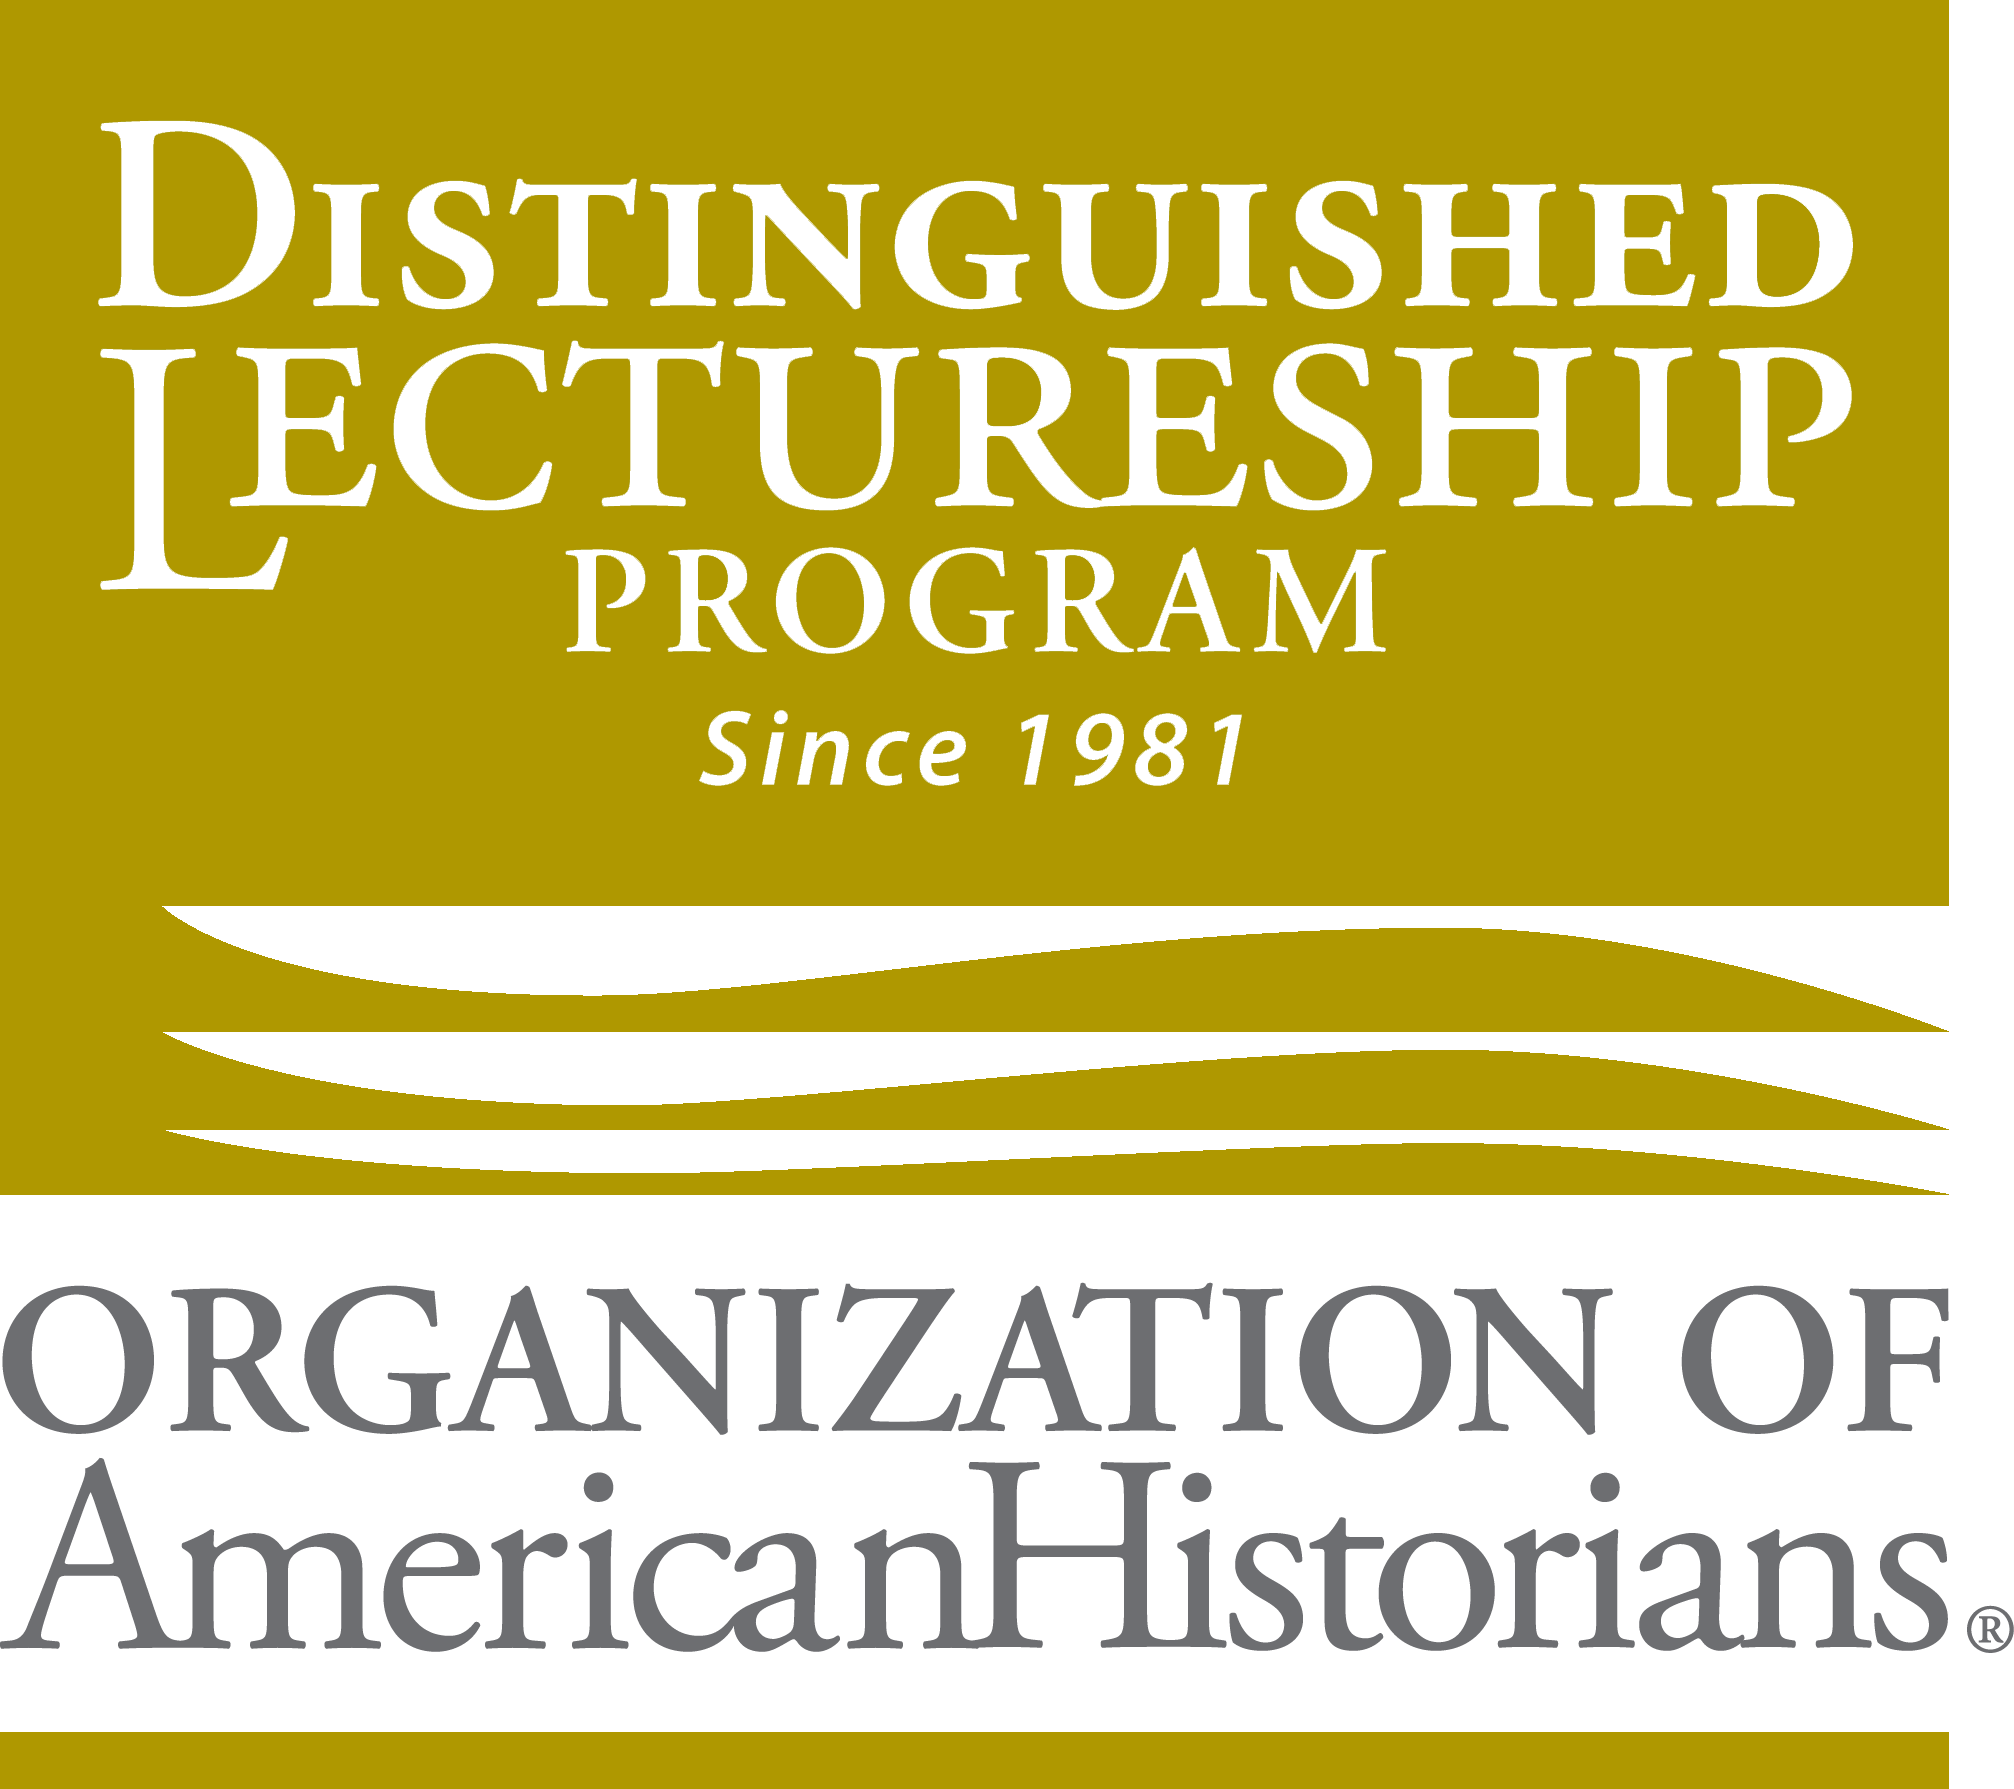 Distinguished Lectureship Program logo